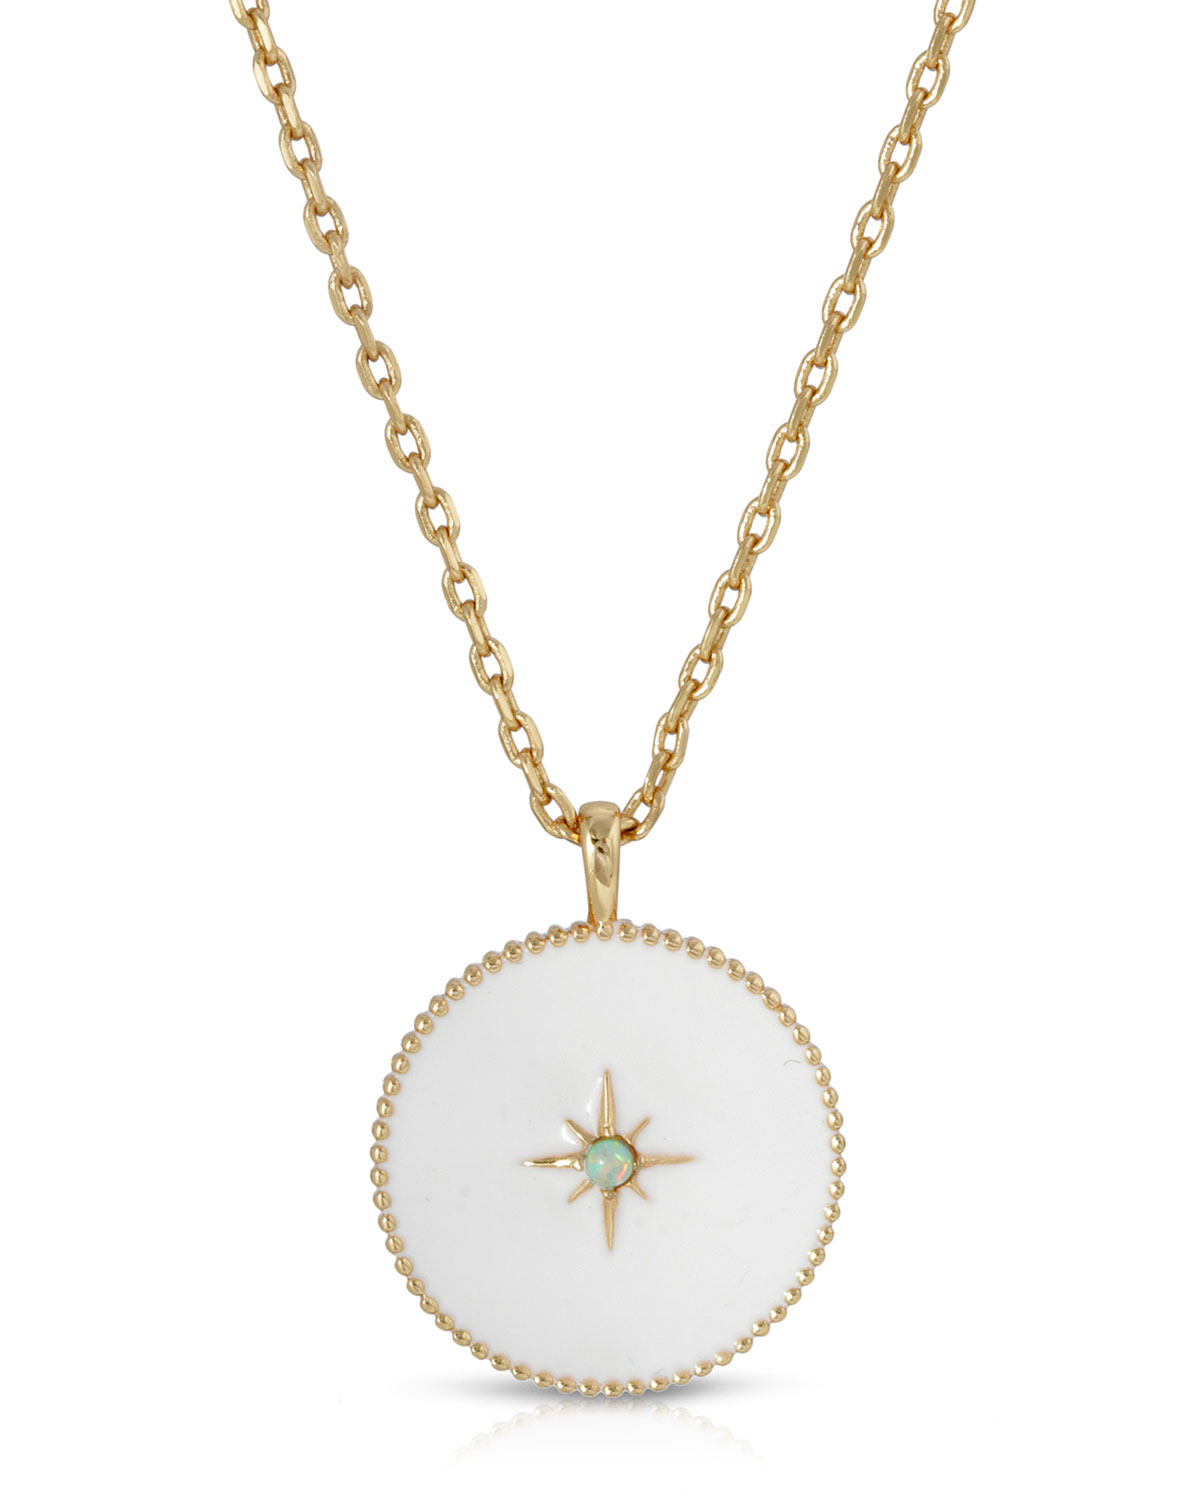 Guiding Light Enamel Pendant Necklace with Opal